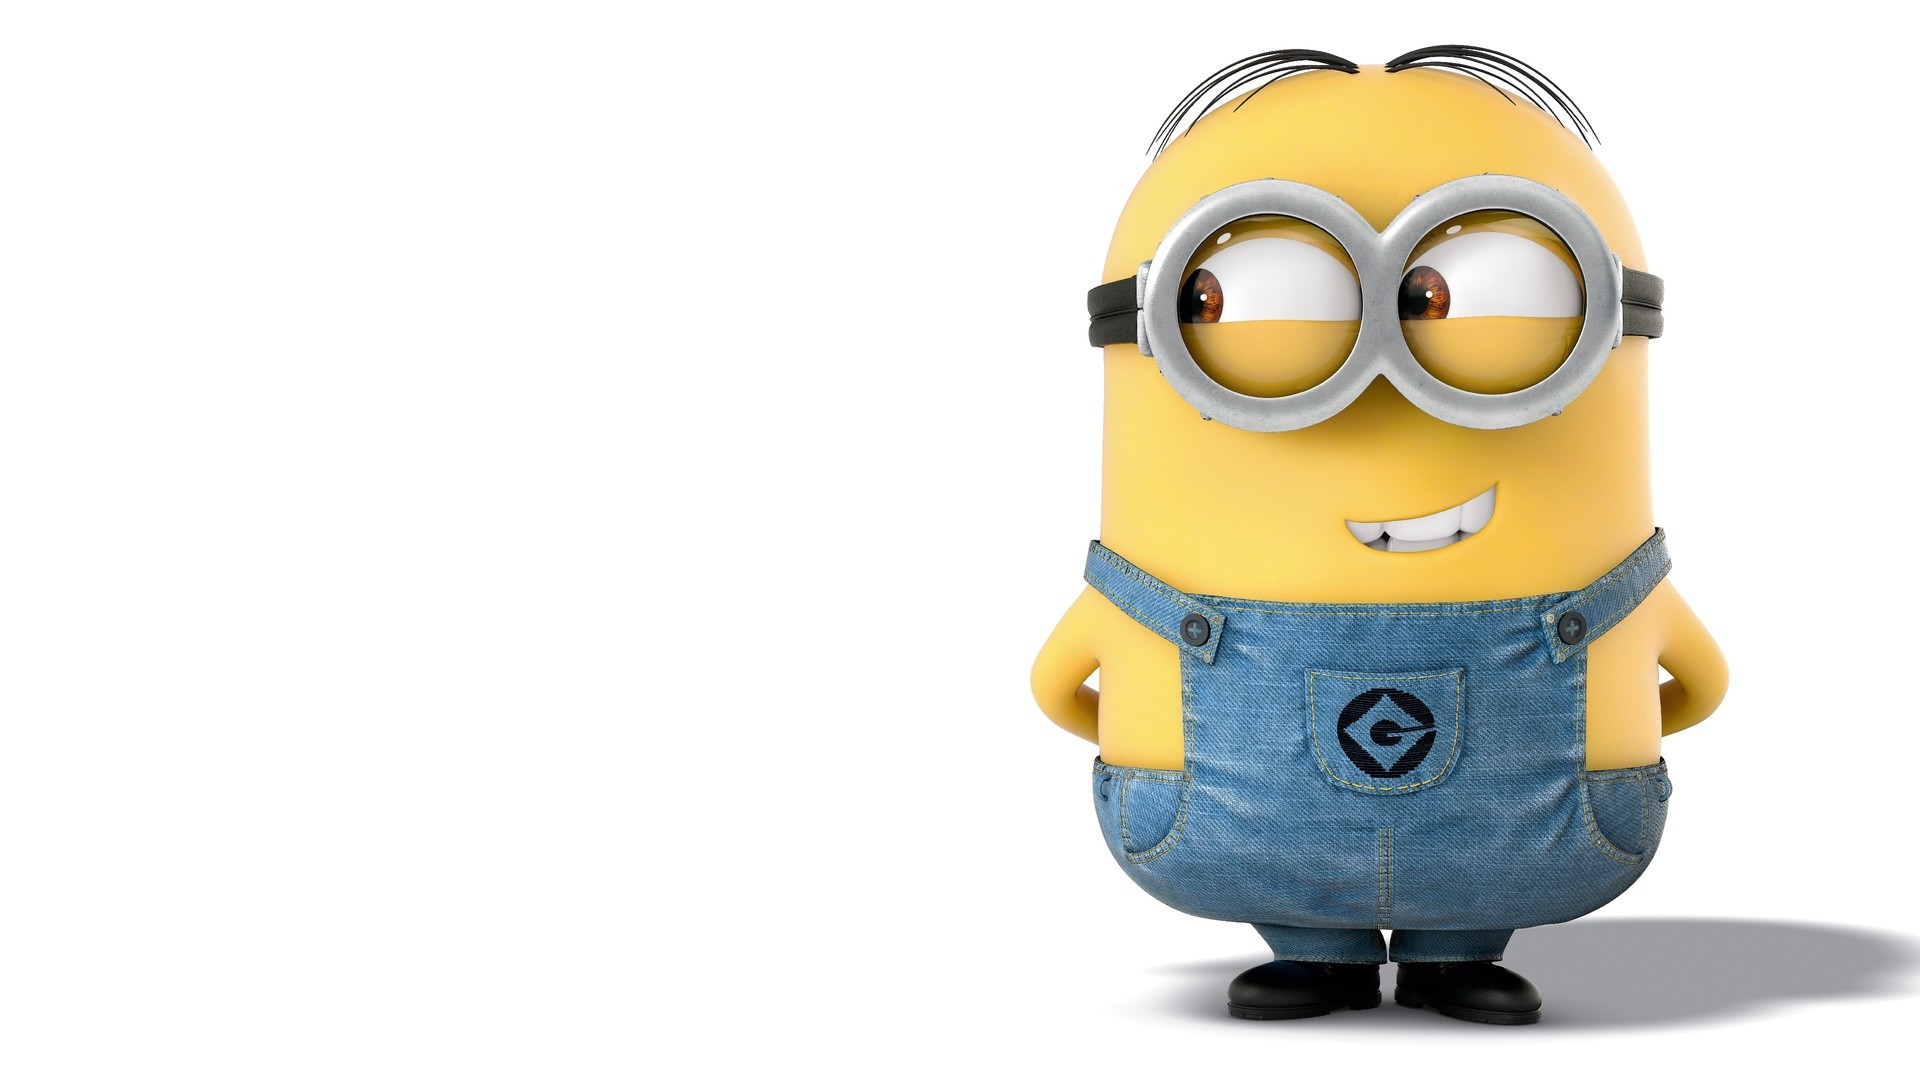 Minion stuart in despicable me 2 hd wallpaper ihd wallpapers .